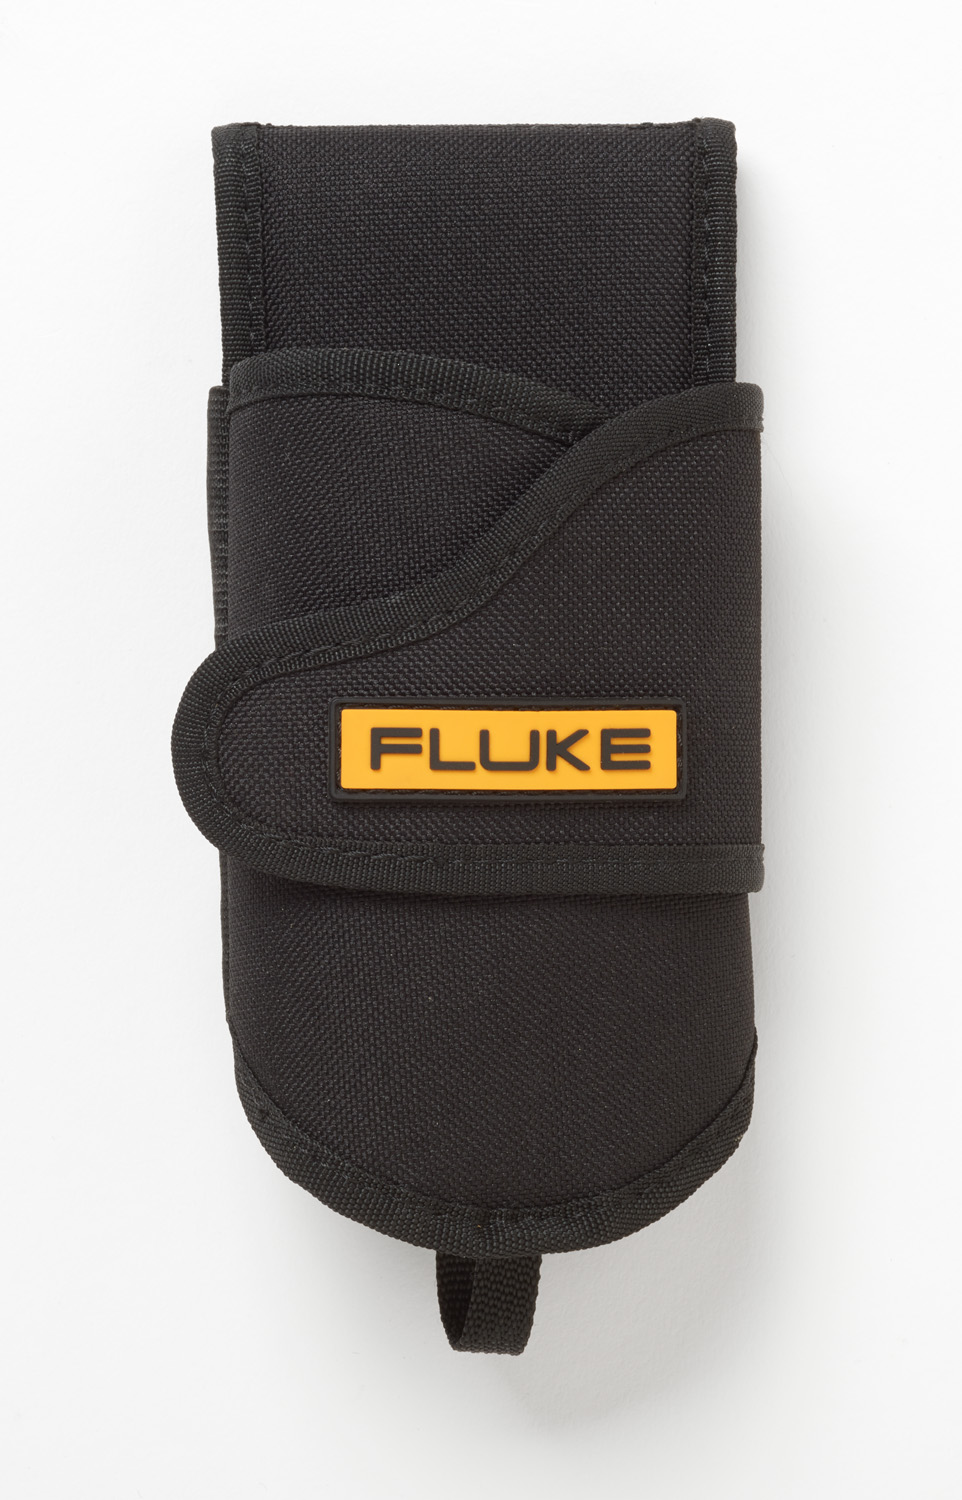 H-T6 FLUKE T6 HOLSTER BELT ACCESSORY